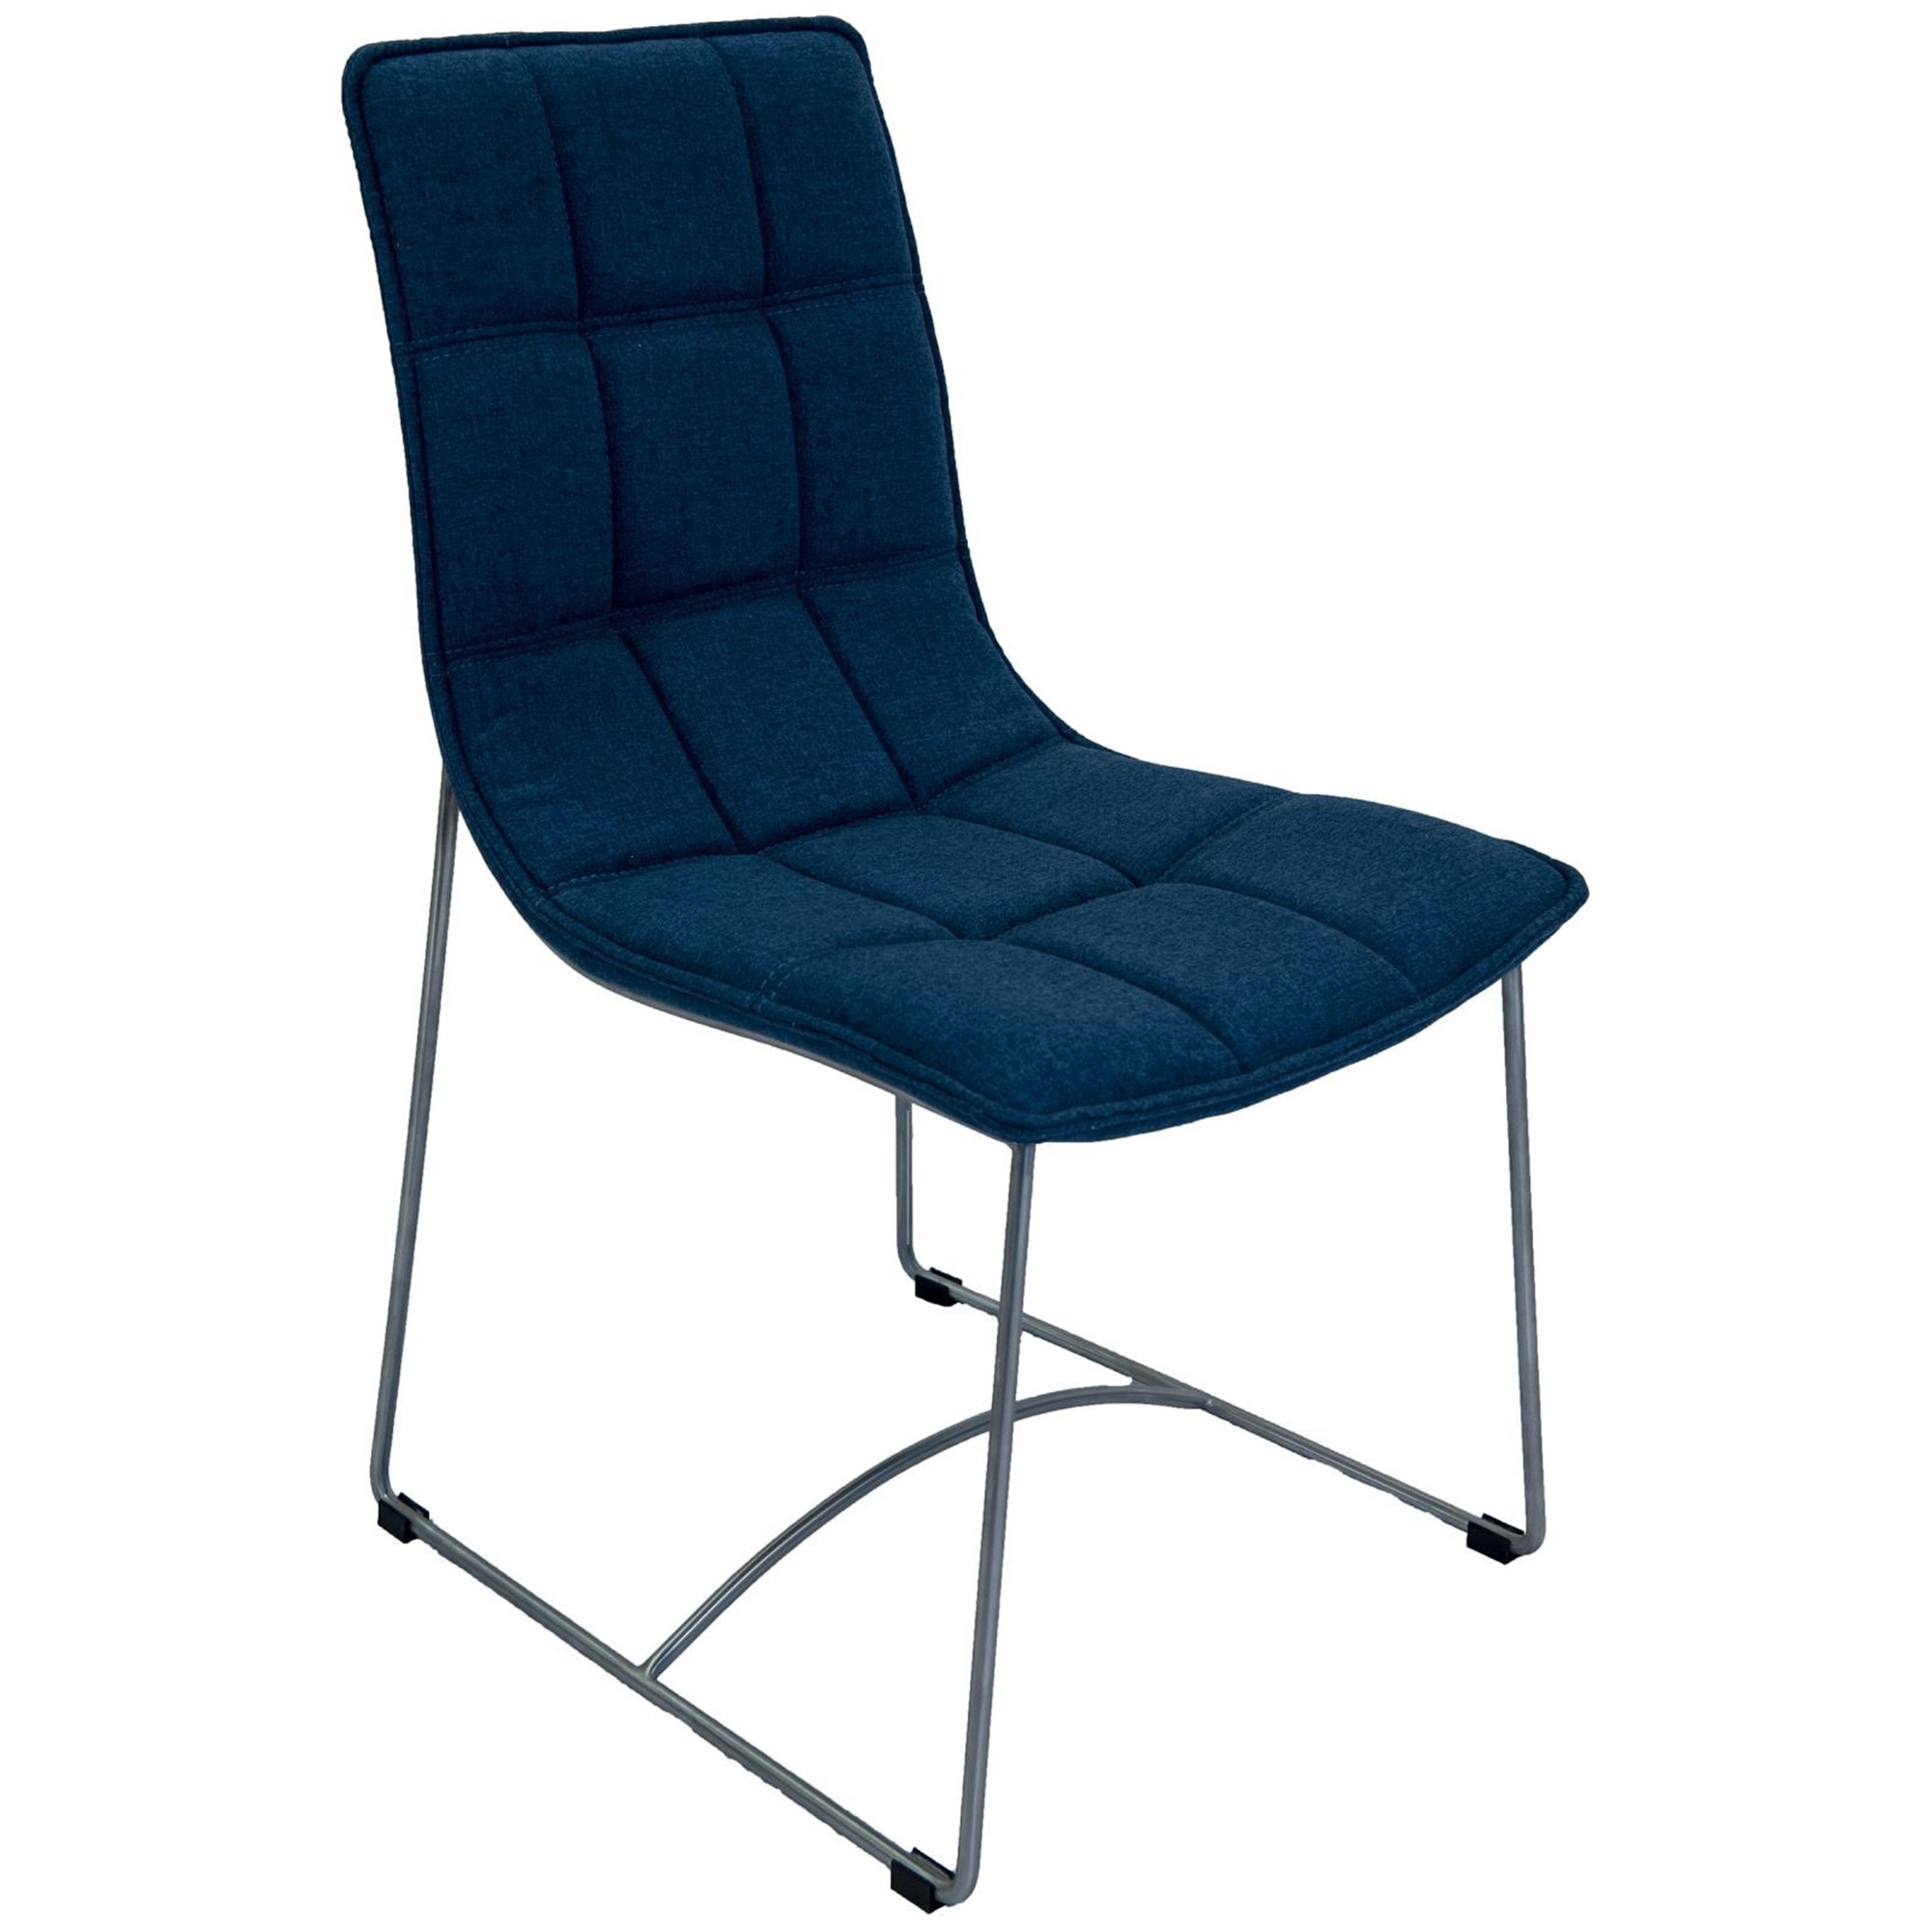 Astounding Dining Chairs Como Dining Chair Blue Andrewgaddart Wooden Chair Designs For Living Room Andrewgaddartcom